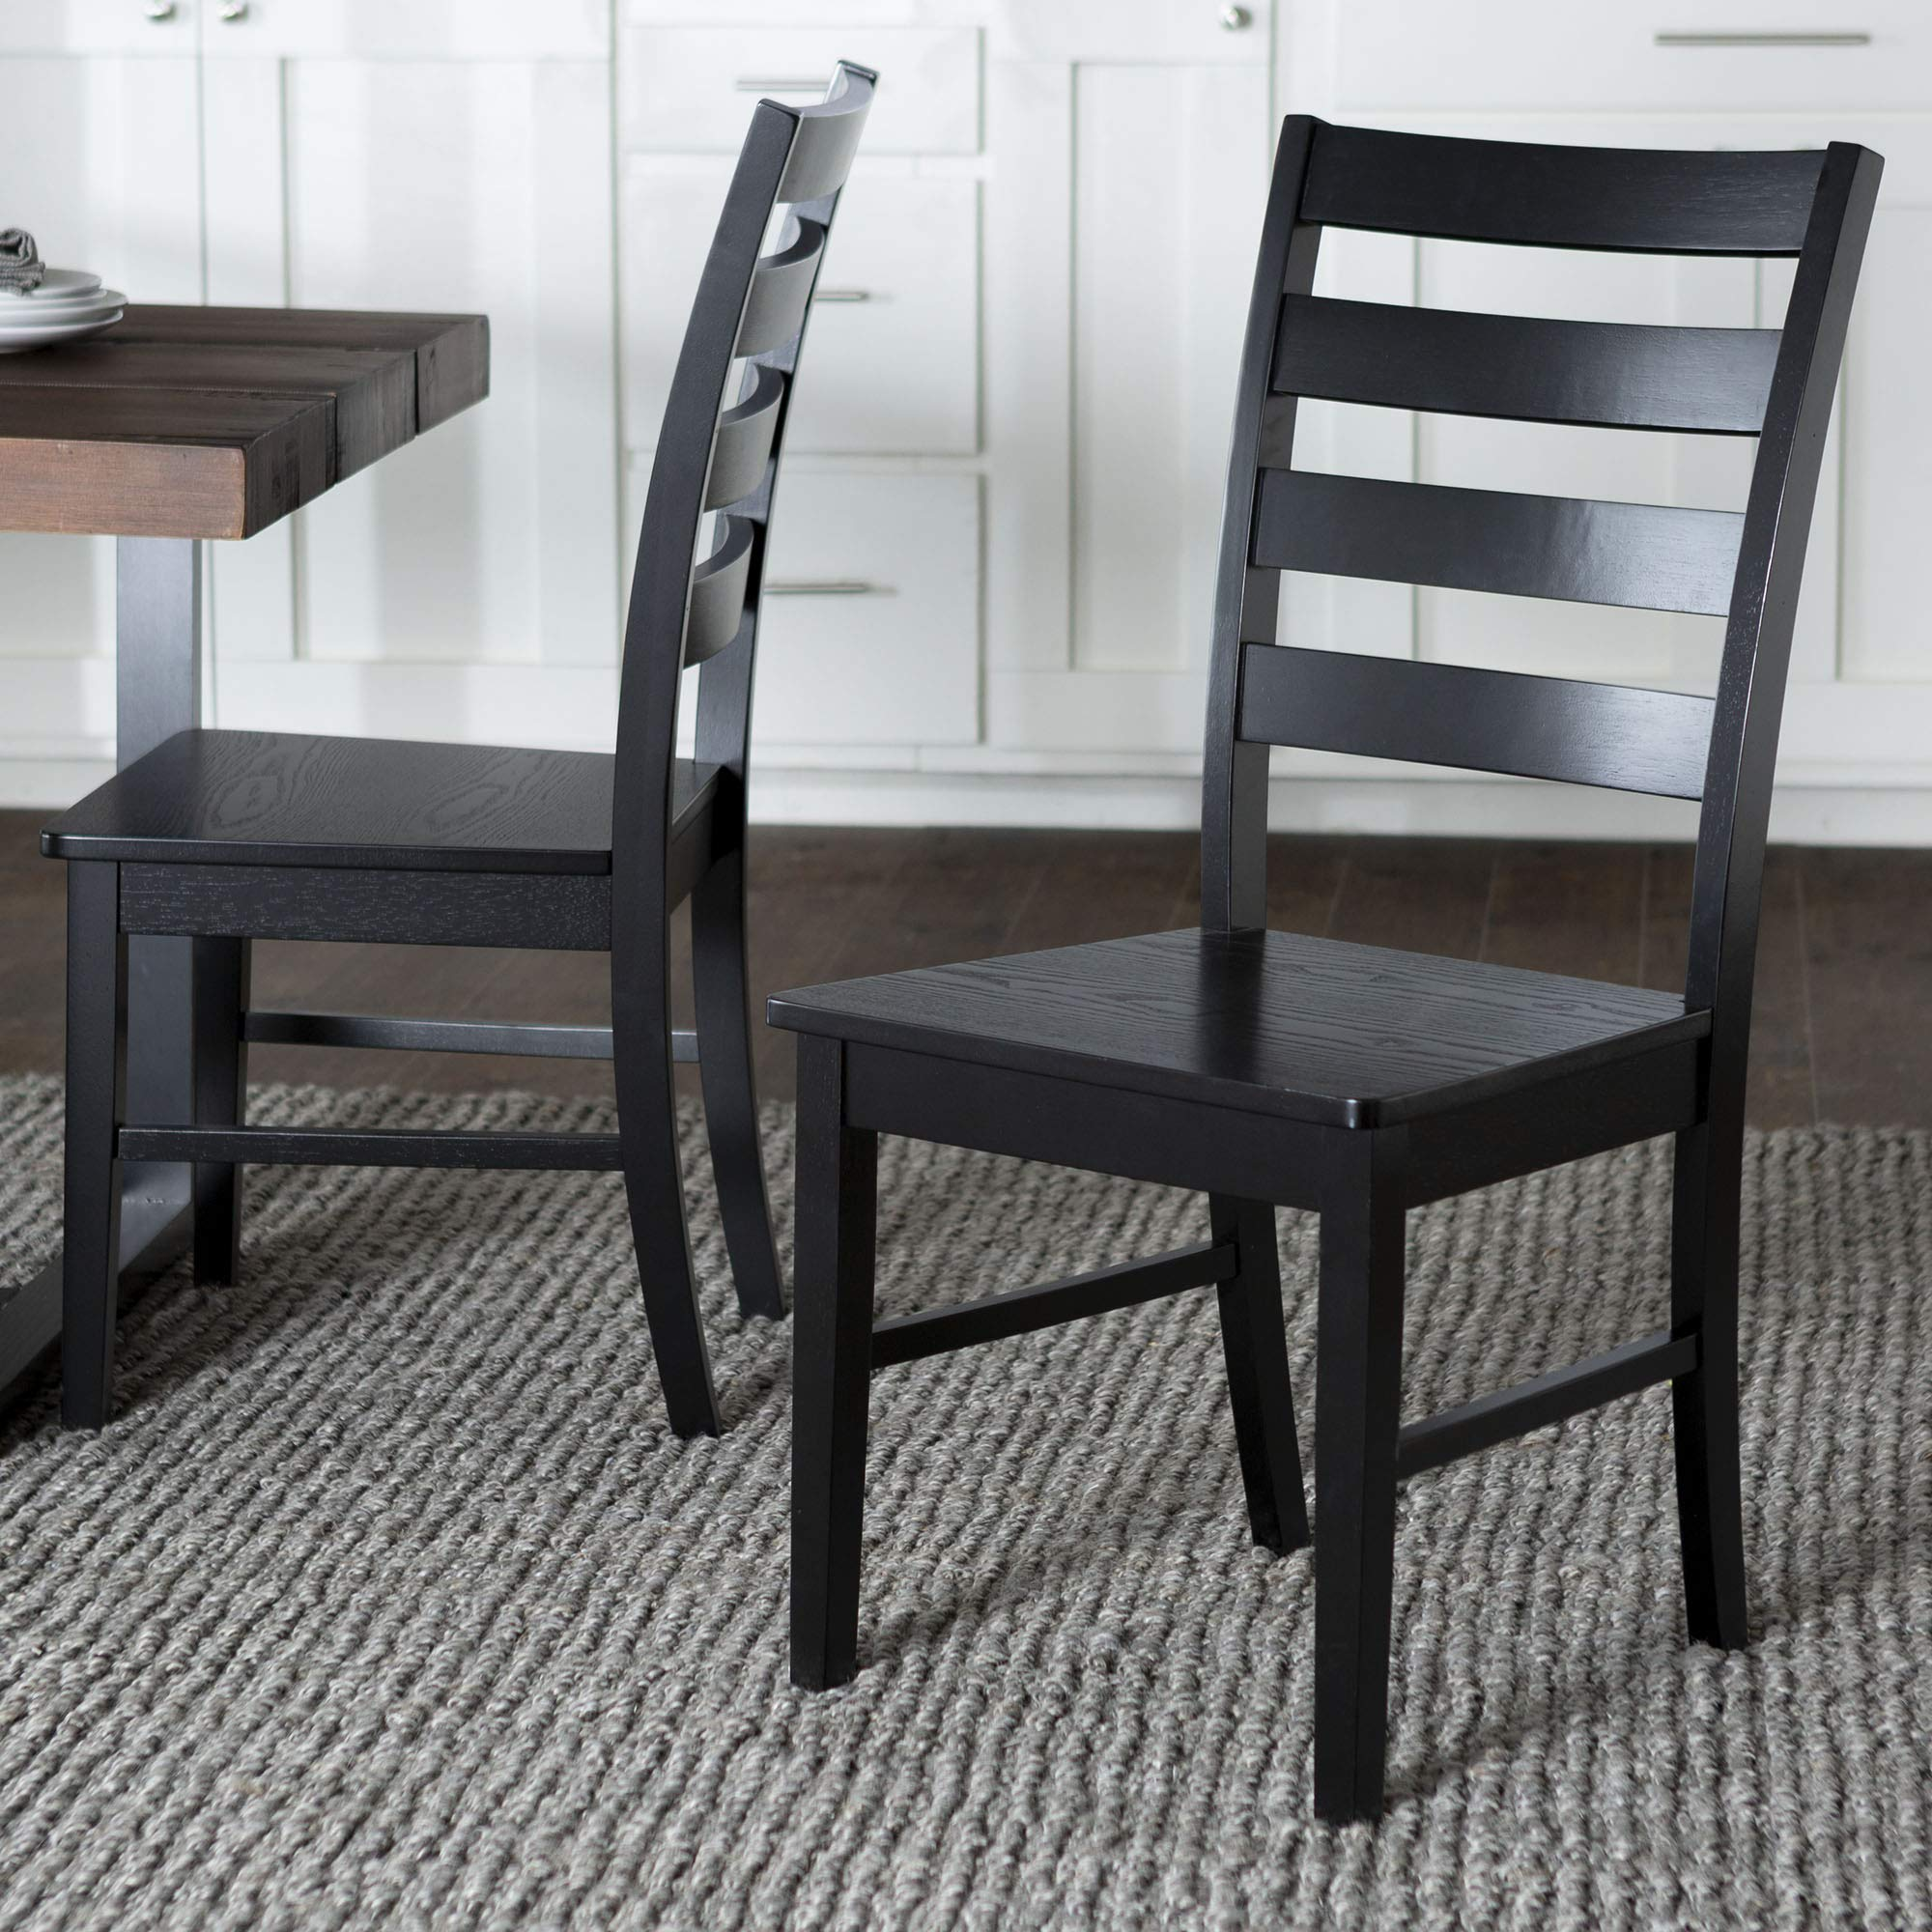 WE Furniture Modern Farmhouse Wood Kitchen Dining Chair, Set Of 2, Black by WE Furniture